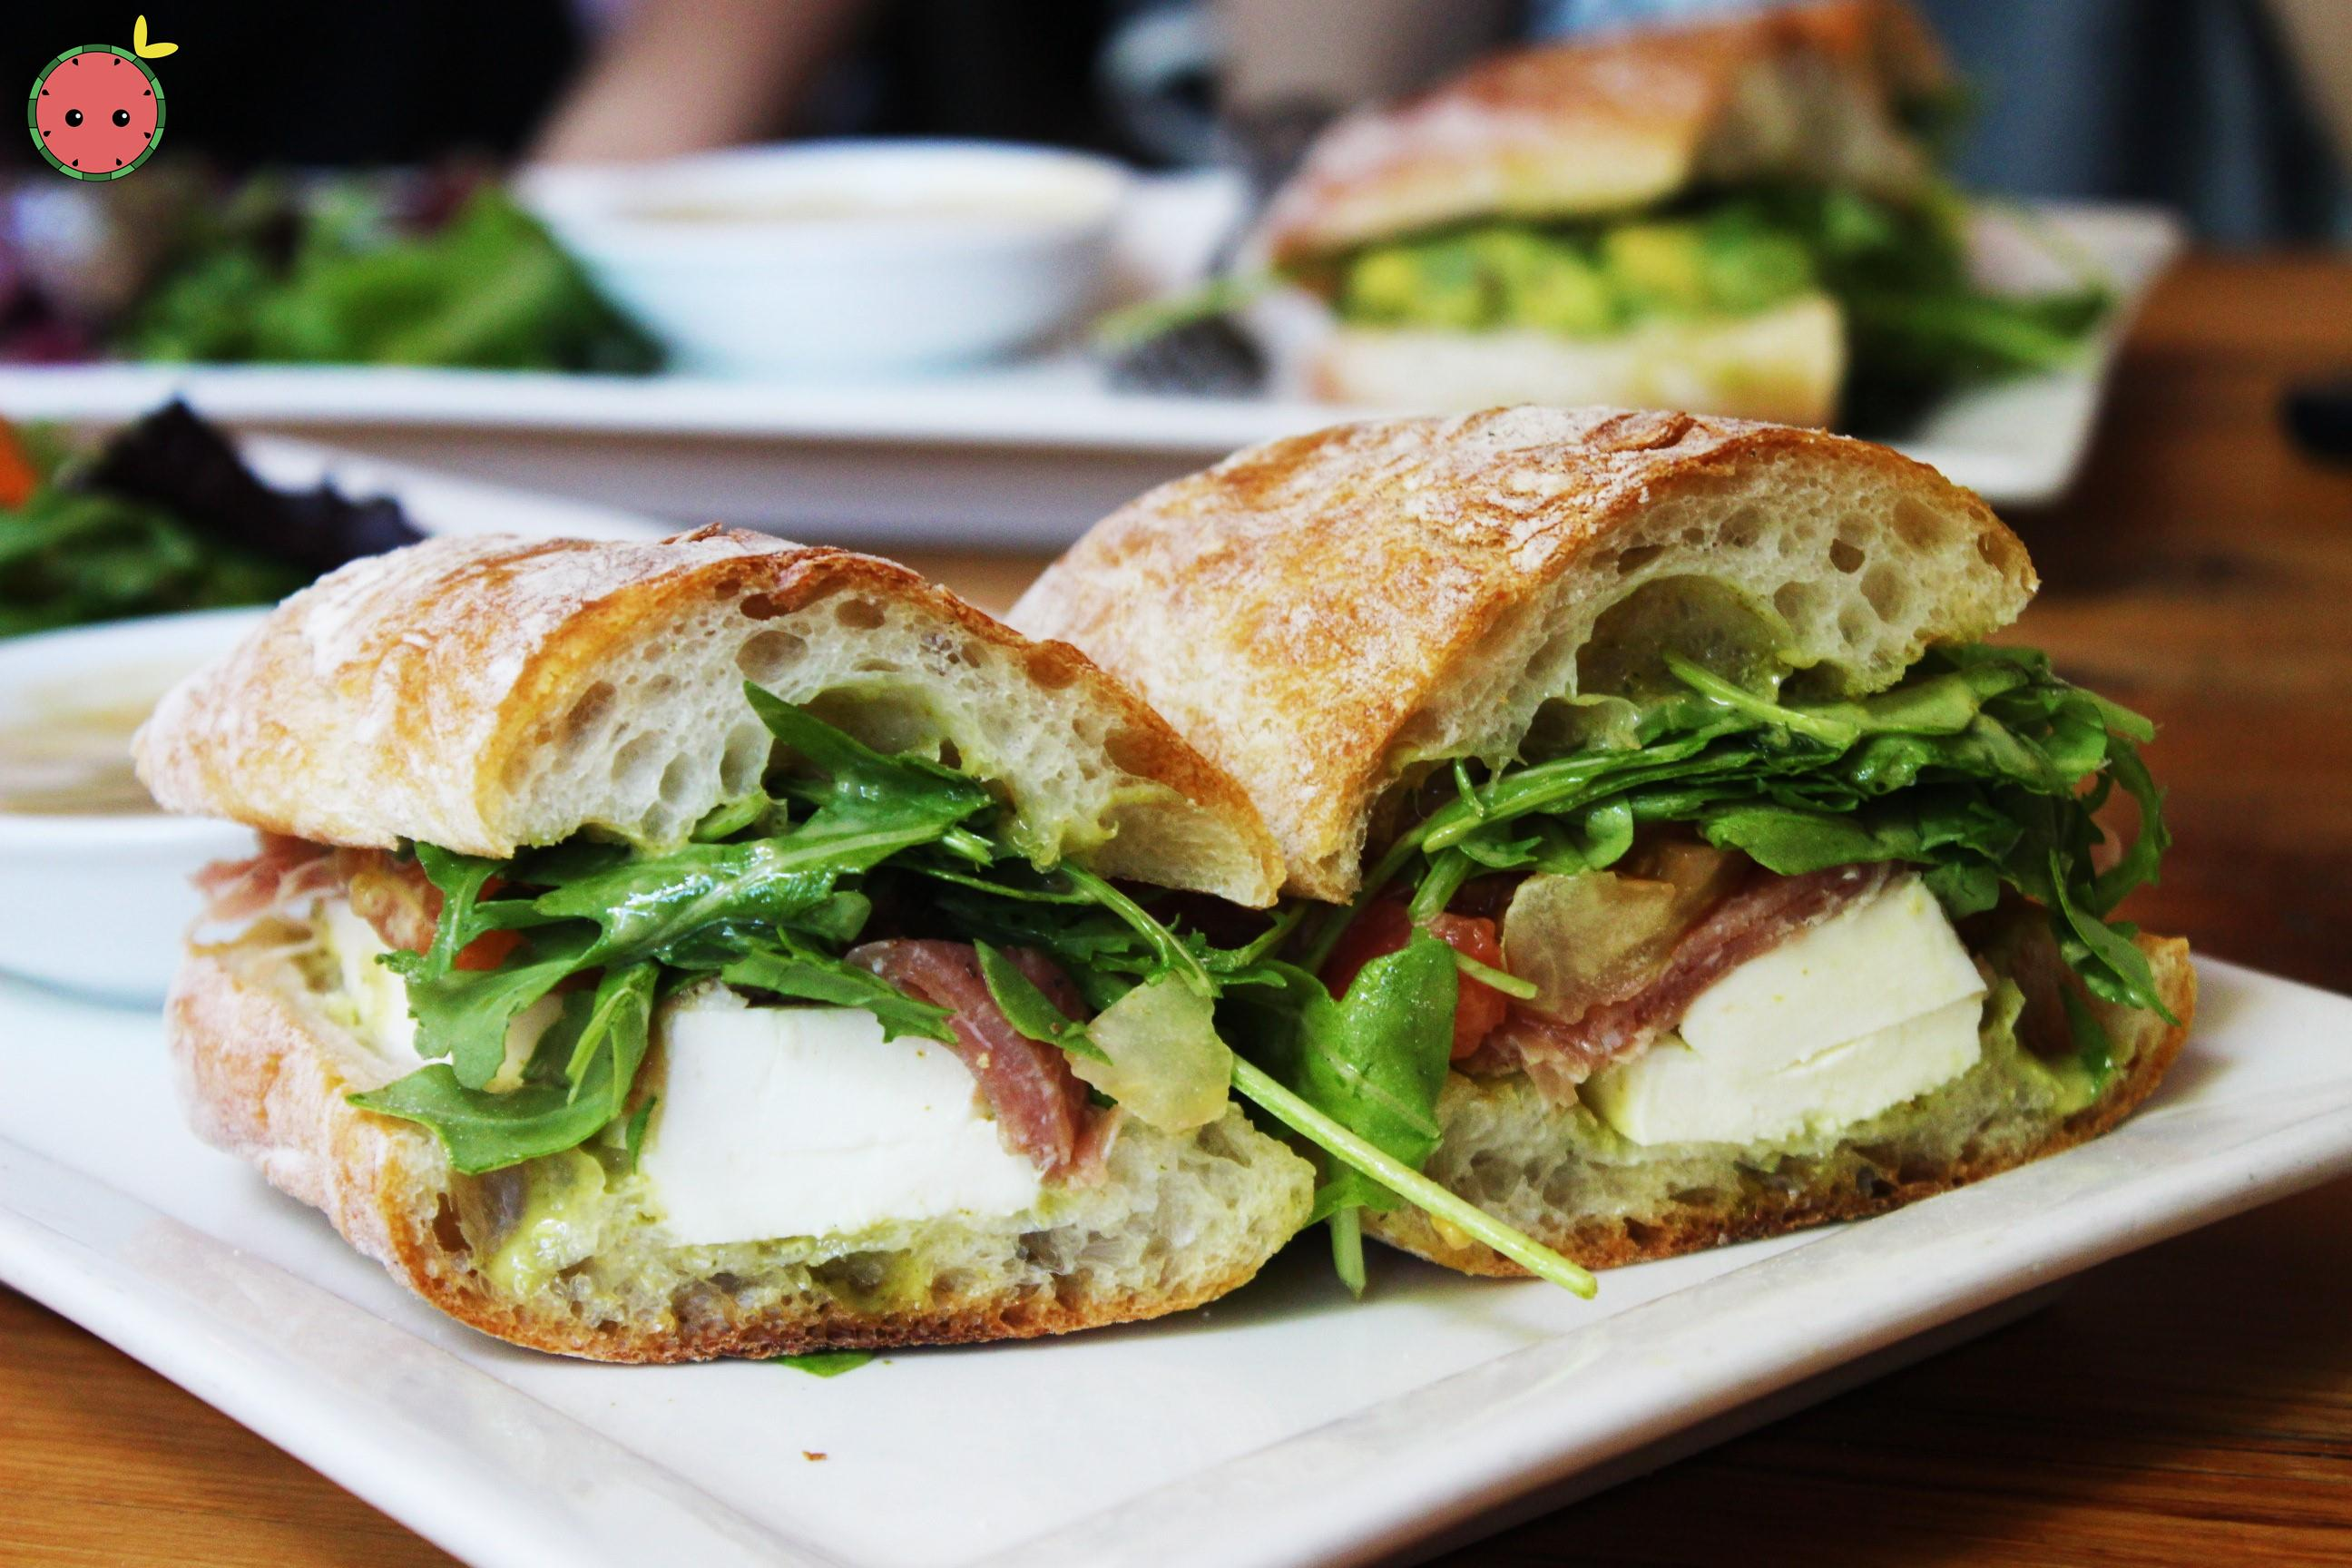 Mozzarella Farm Style Sandwich - Crushed tomatoes, arugula, prosciutto, and mint aioli